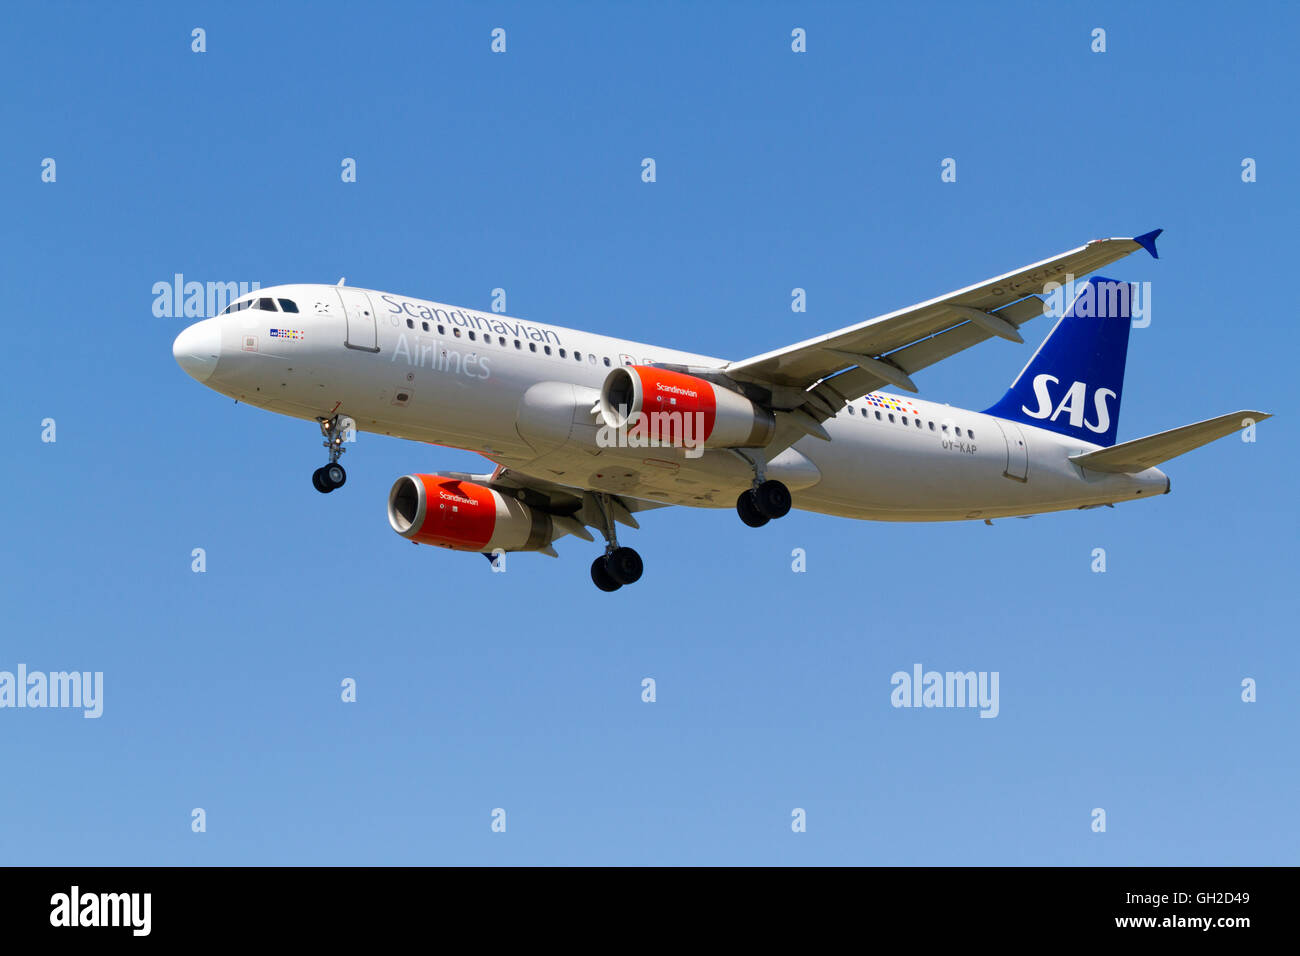 sas-scandinavian-airlines-airbus-a320-oy